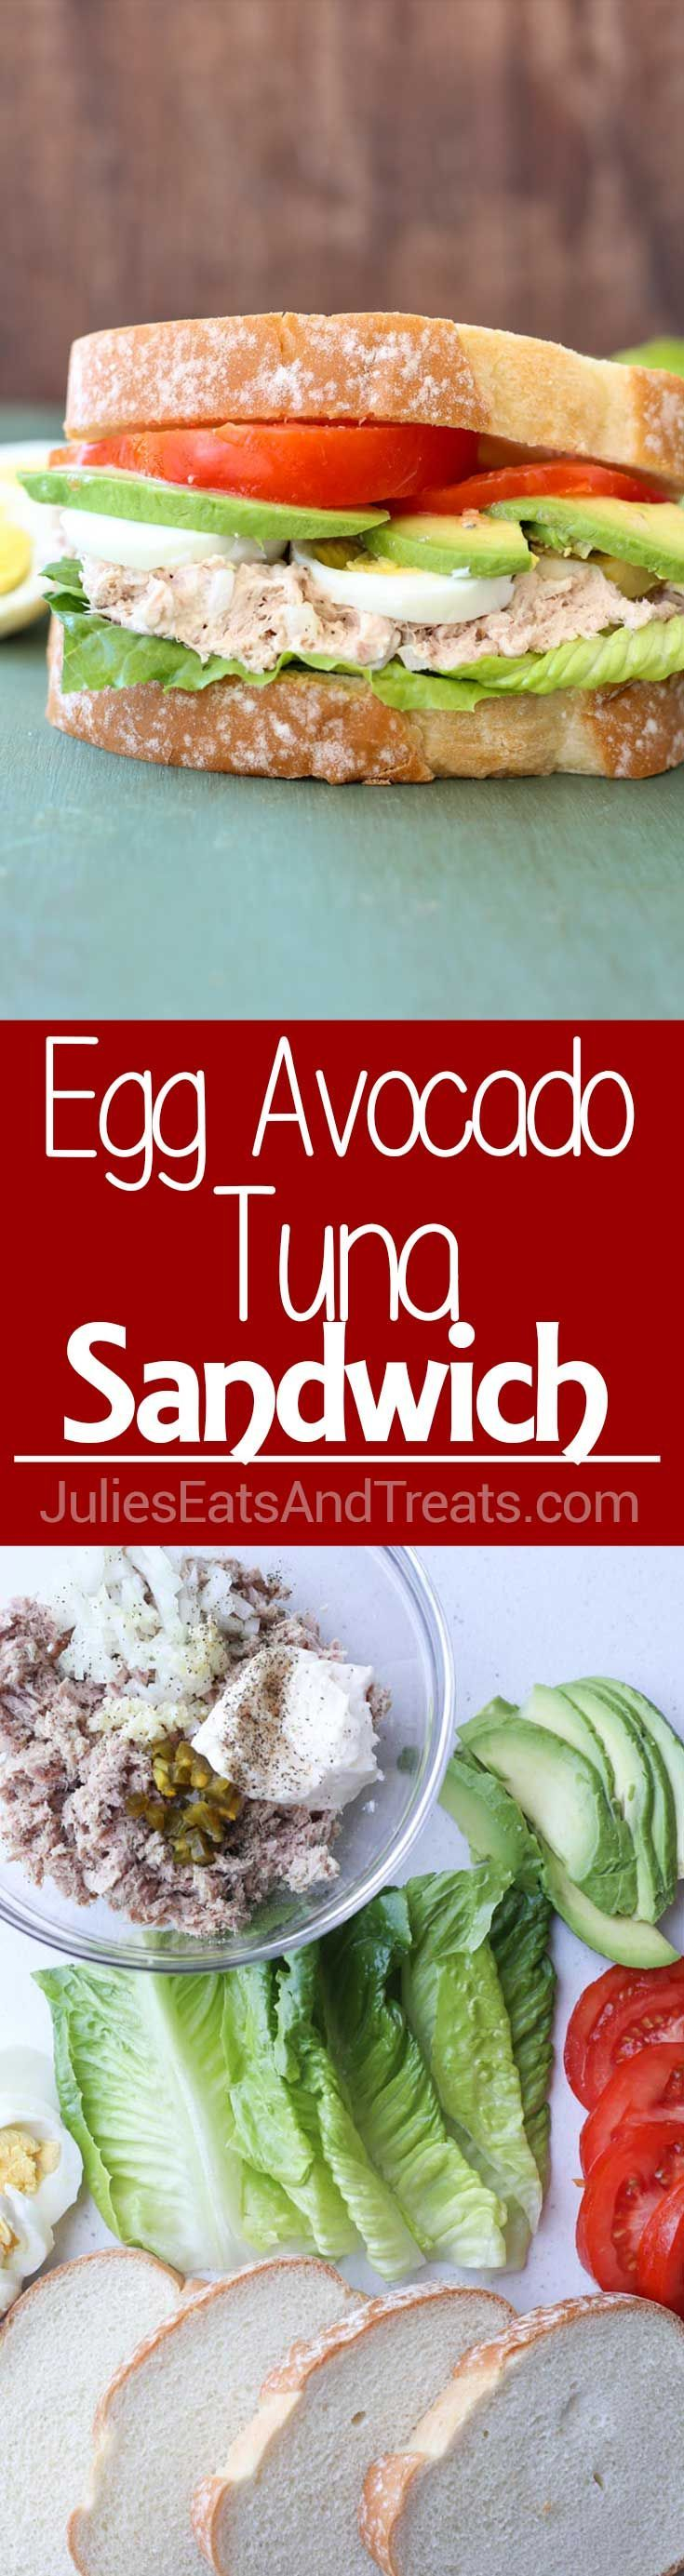 Egg Avocado Tuna Sandwich ~ Easy, Delicious Sandwich Perfect for a Quick Lunch Recipe! This Egg Tuna Sandwich Adds Avocado into the Mix for a Delicious Lunch! via @julieseats